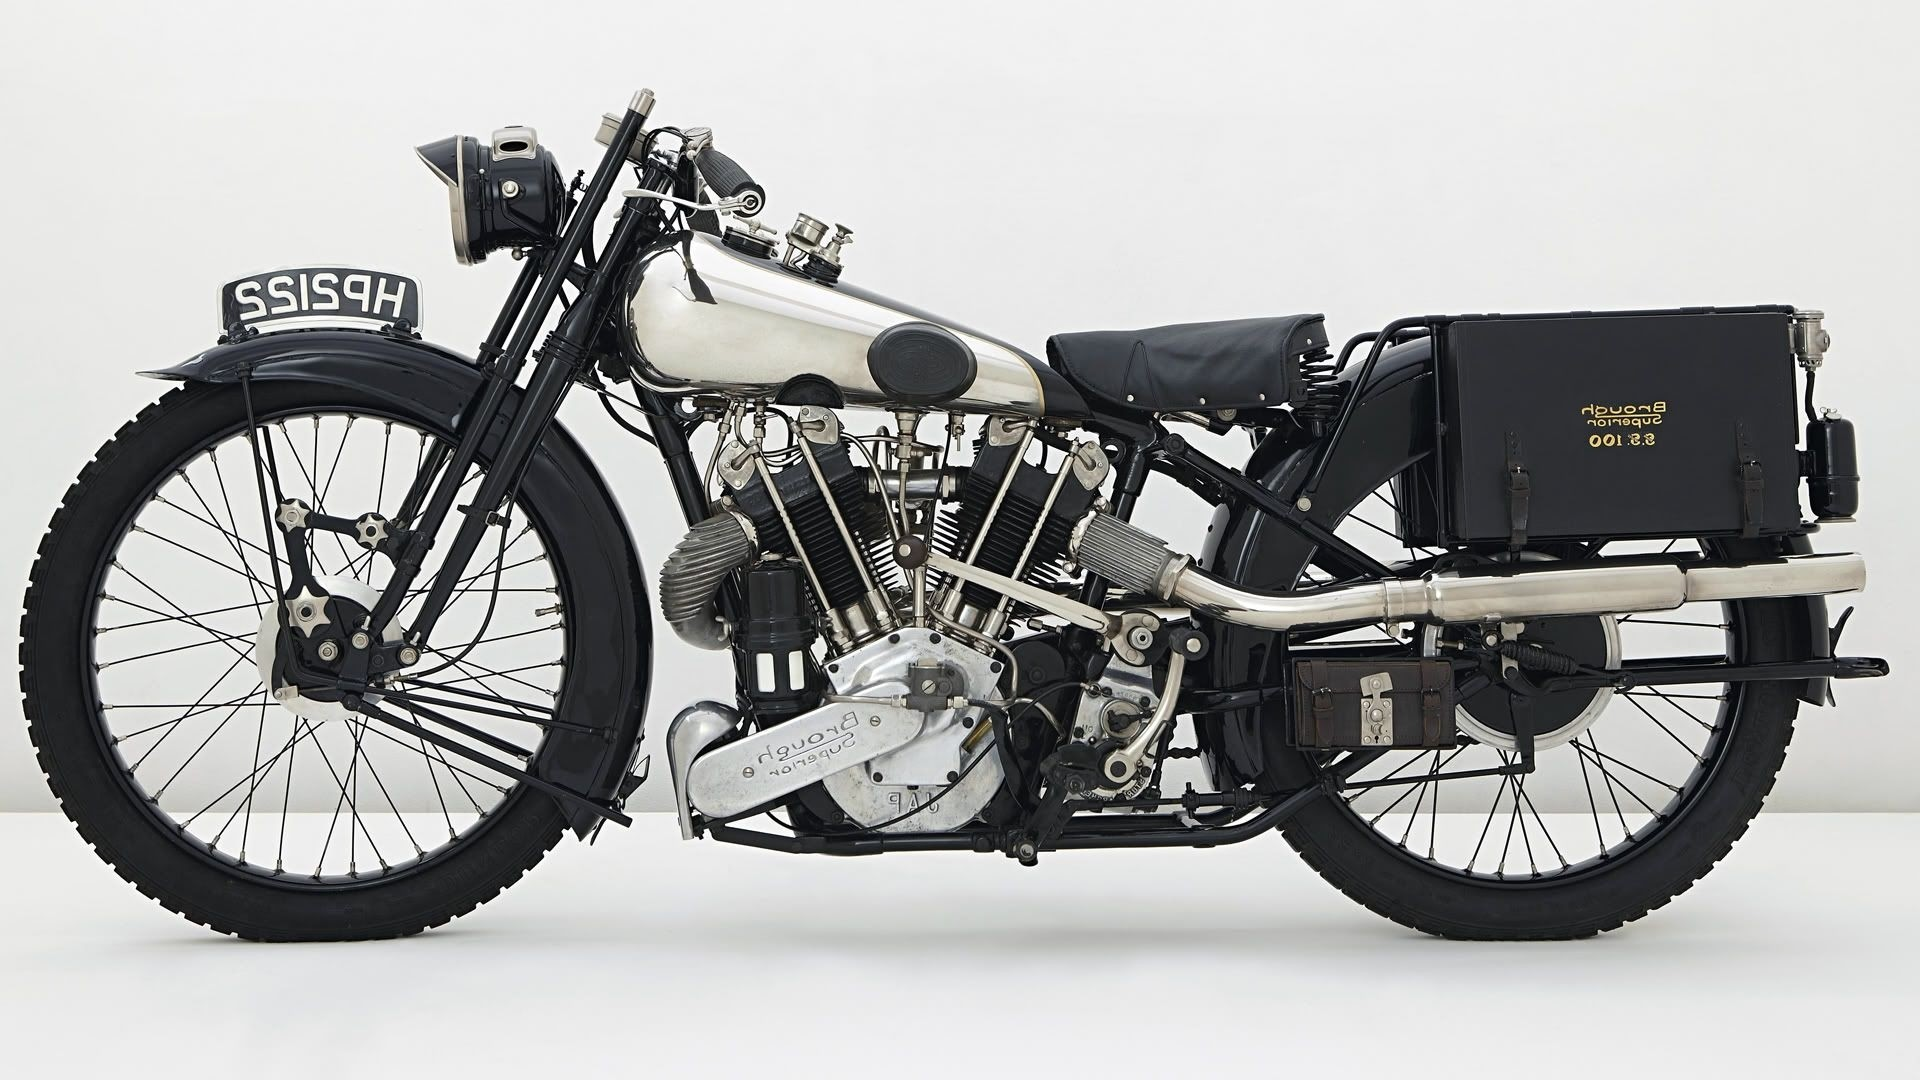 Res: 1920x1080, Vintage Motorcycle Wallpaper High Definition